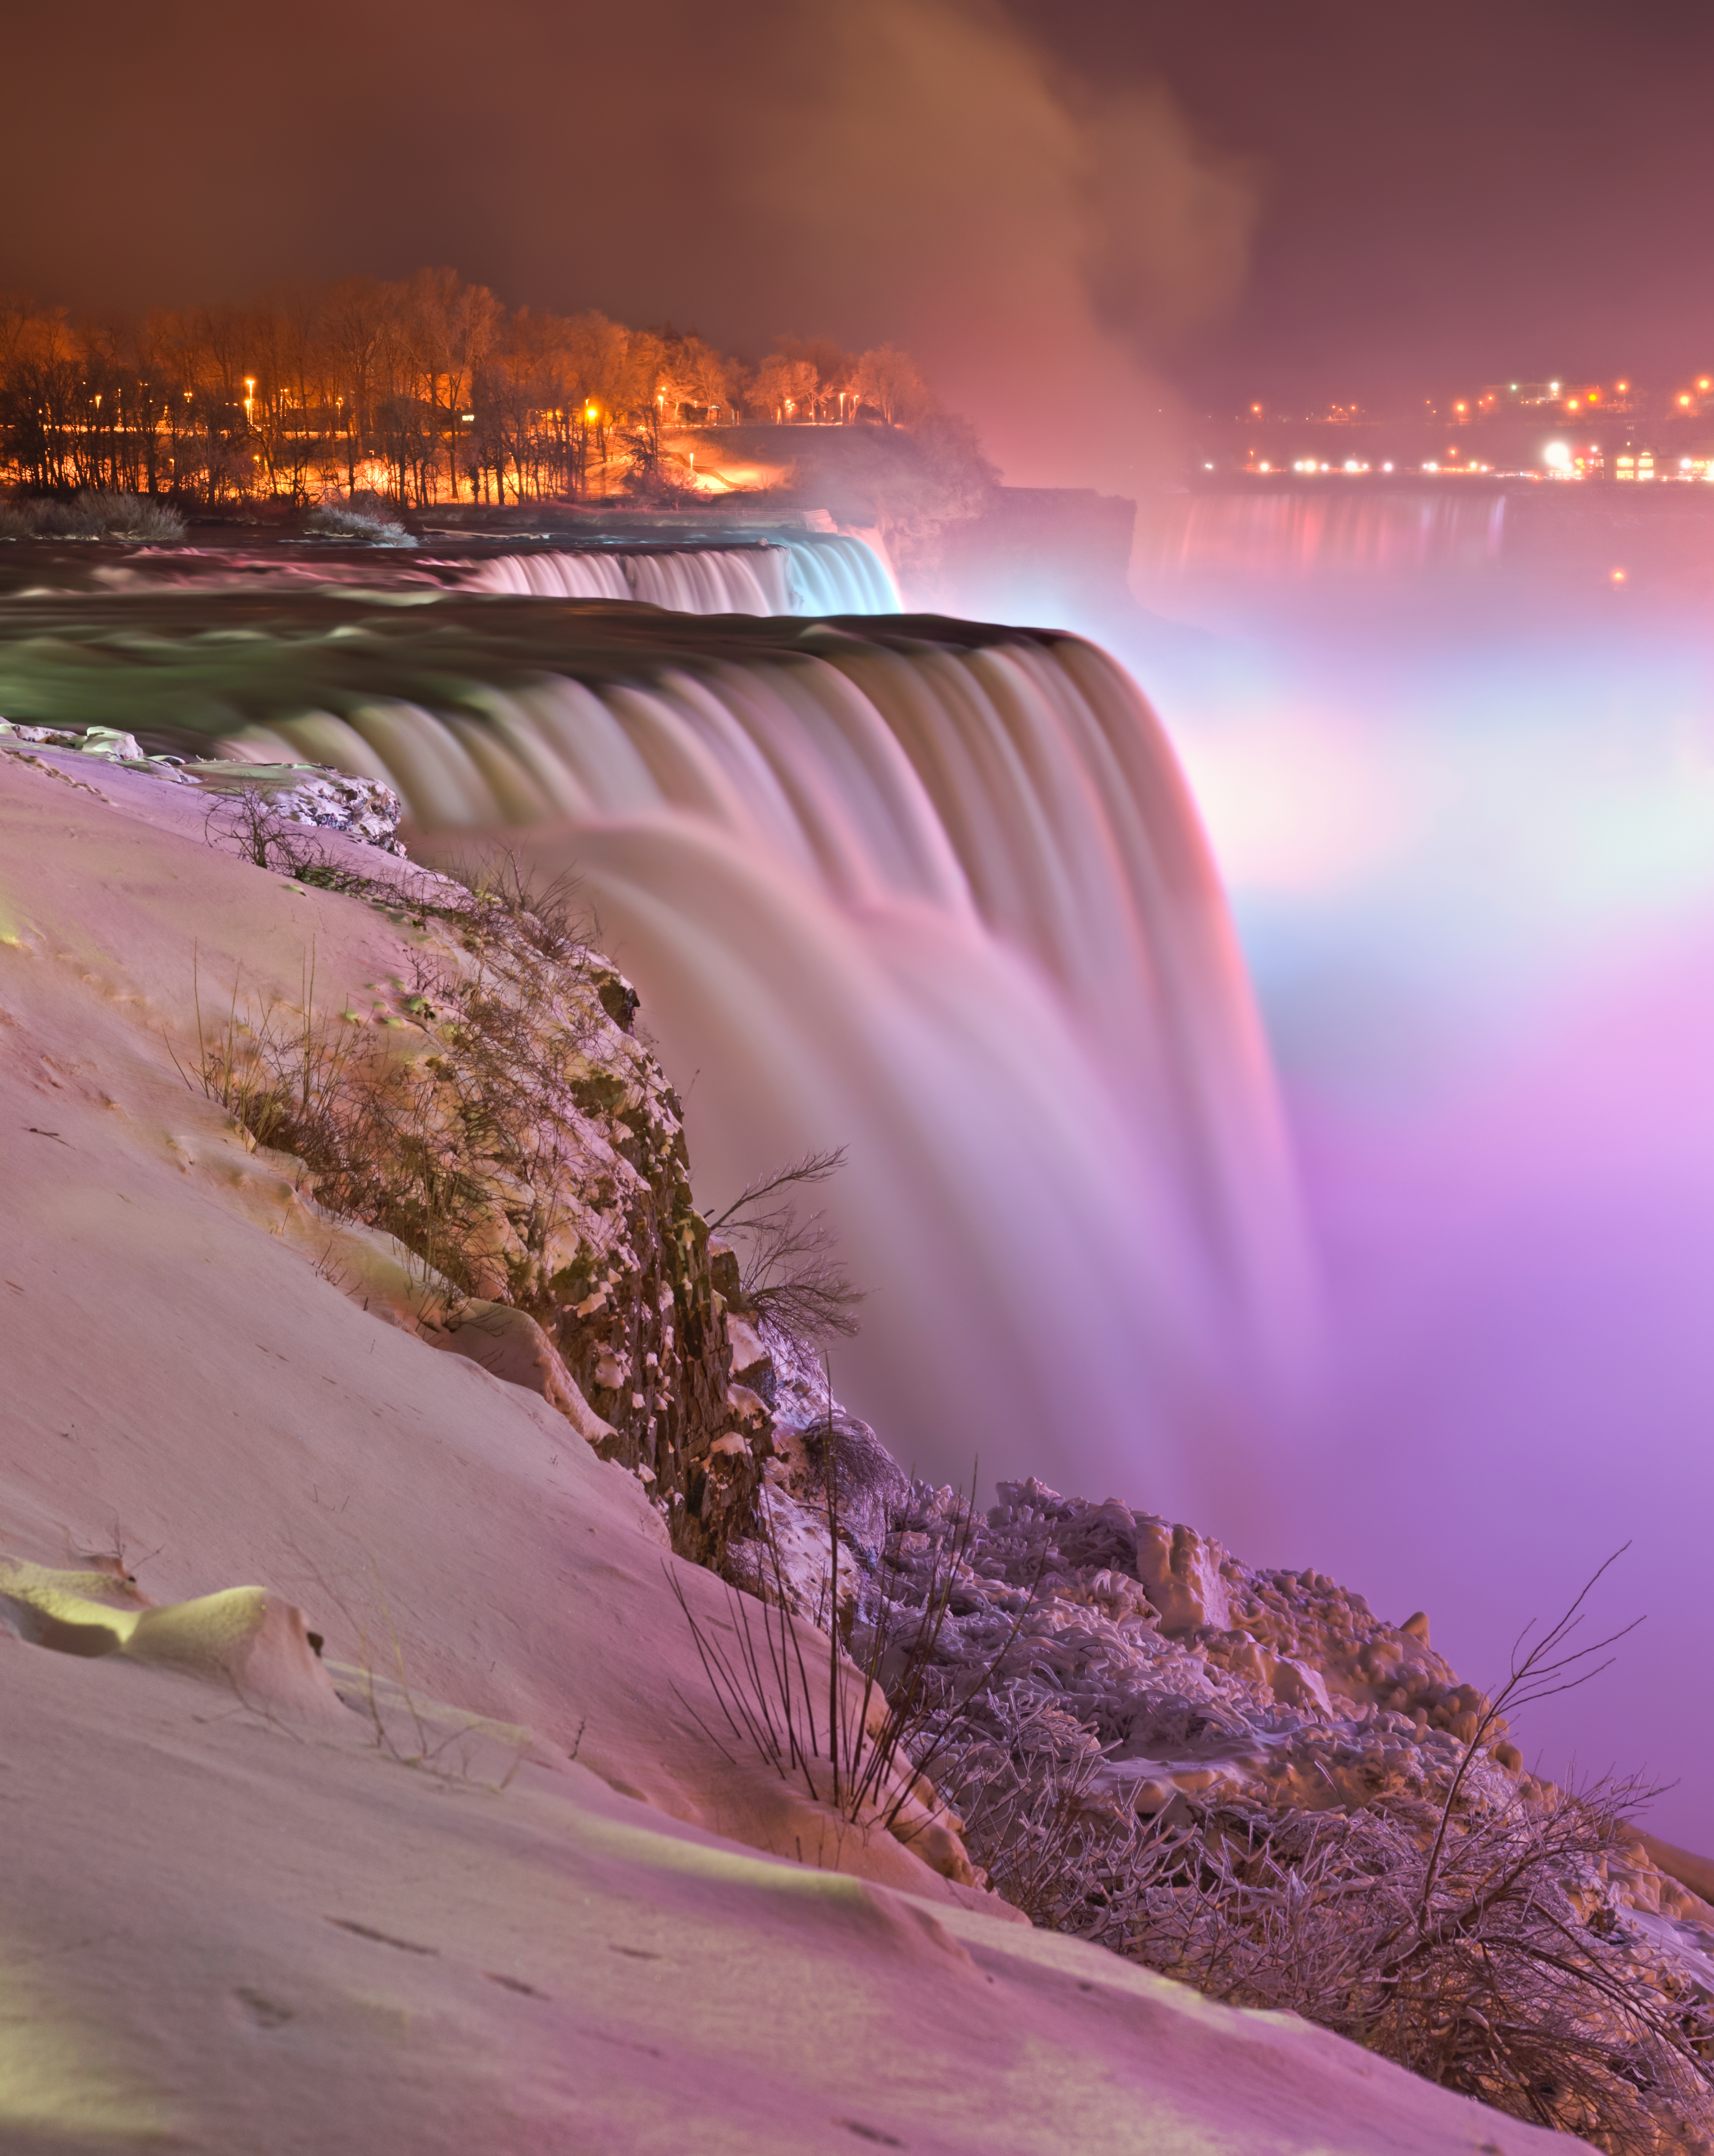 File:Niagara falls - Winter - Prospect point view at night.jpg - Wikimedia Co...